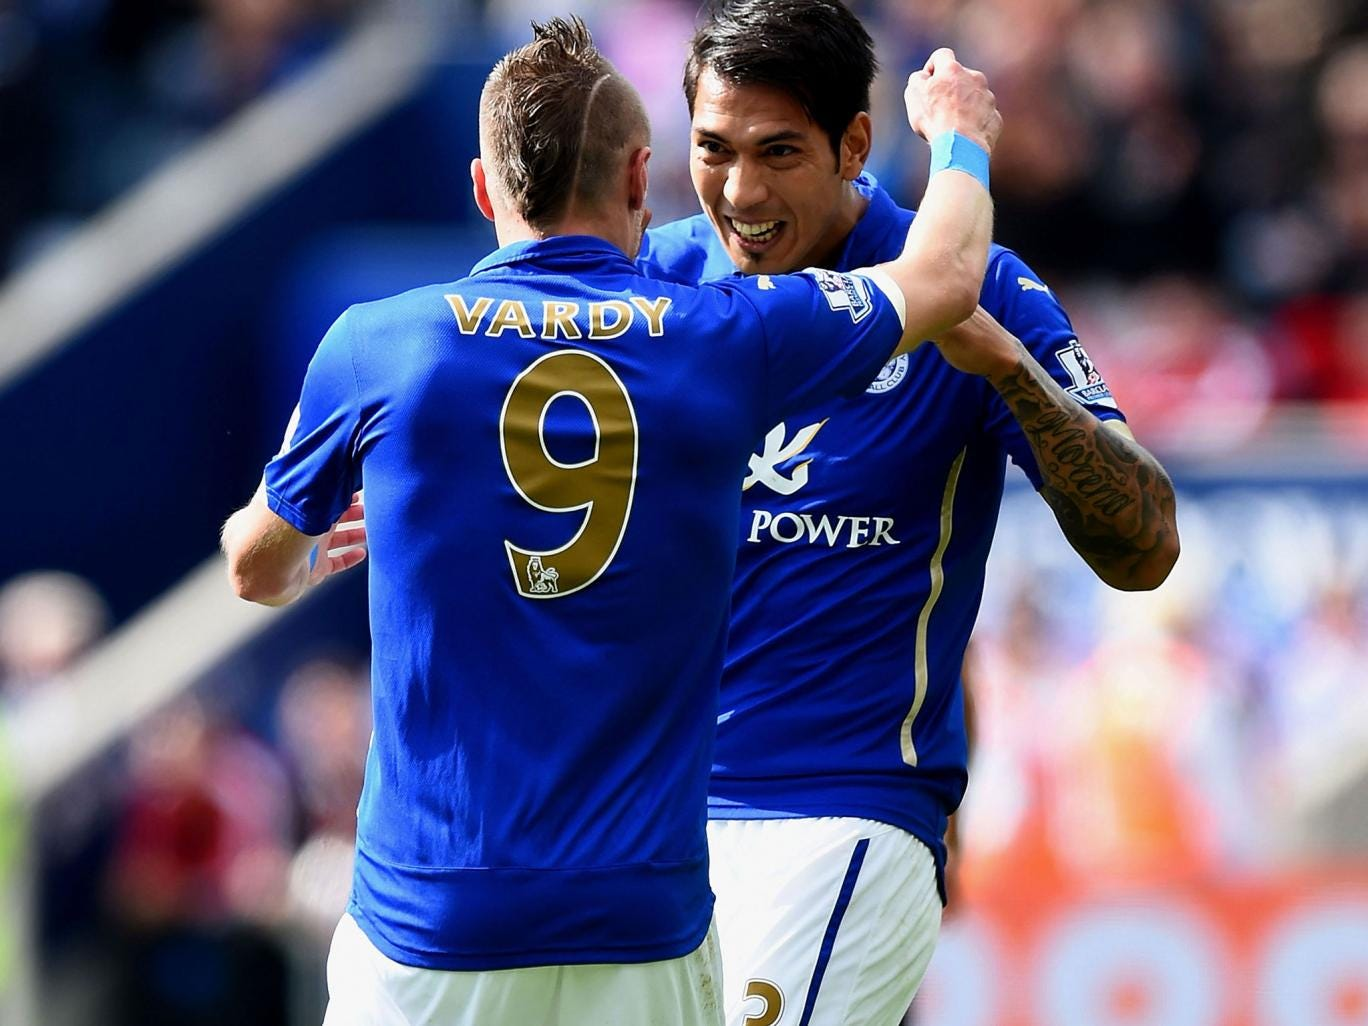 Leicester City 5 Manchester United 3: Mario Balotelli And